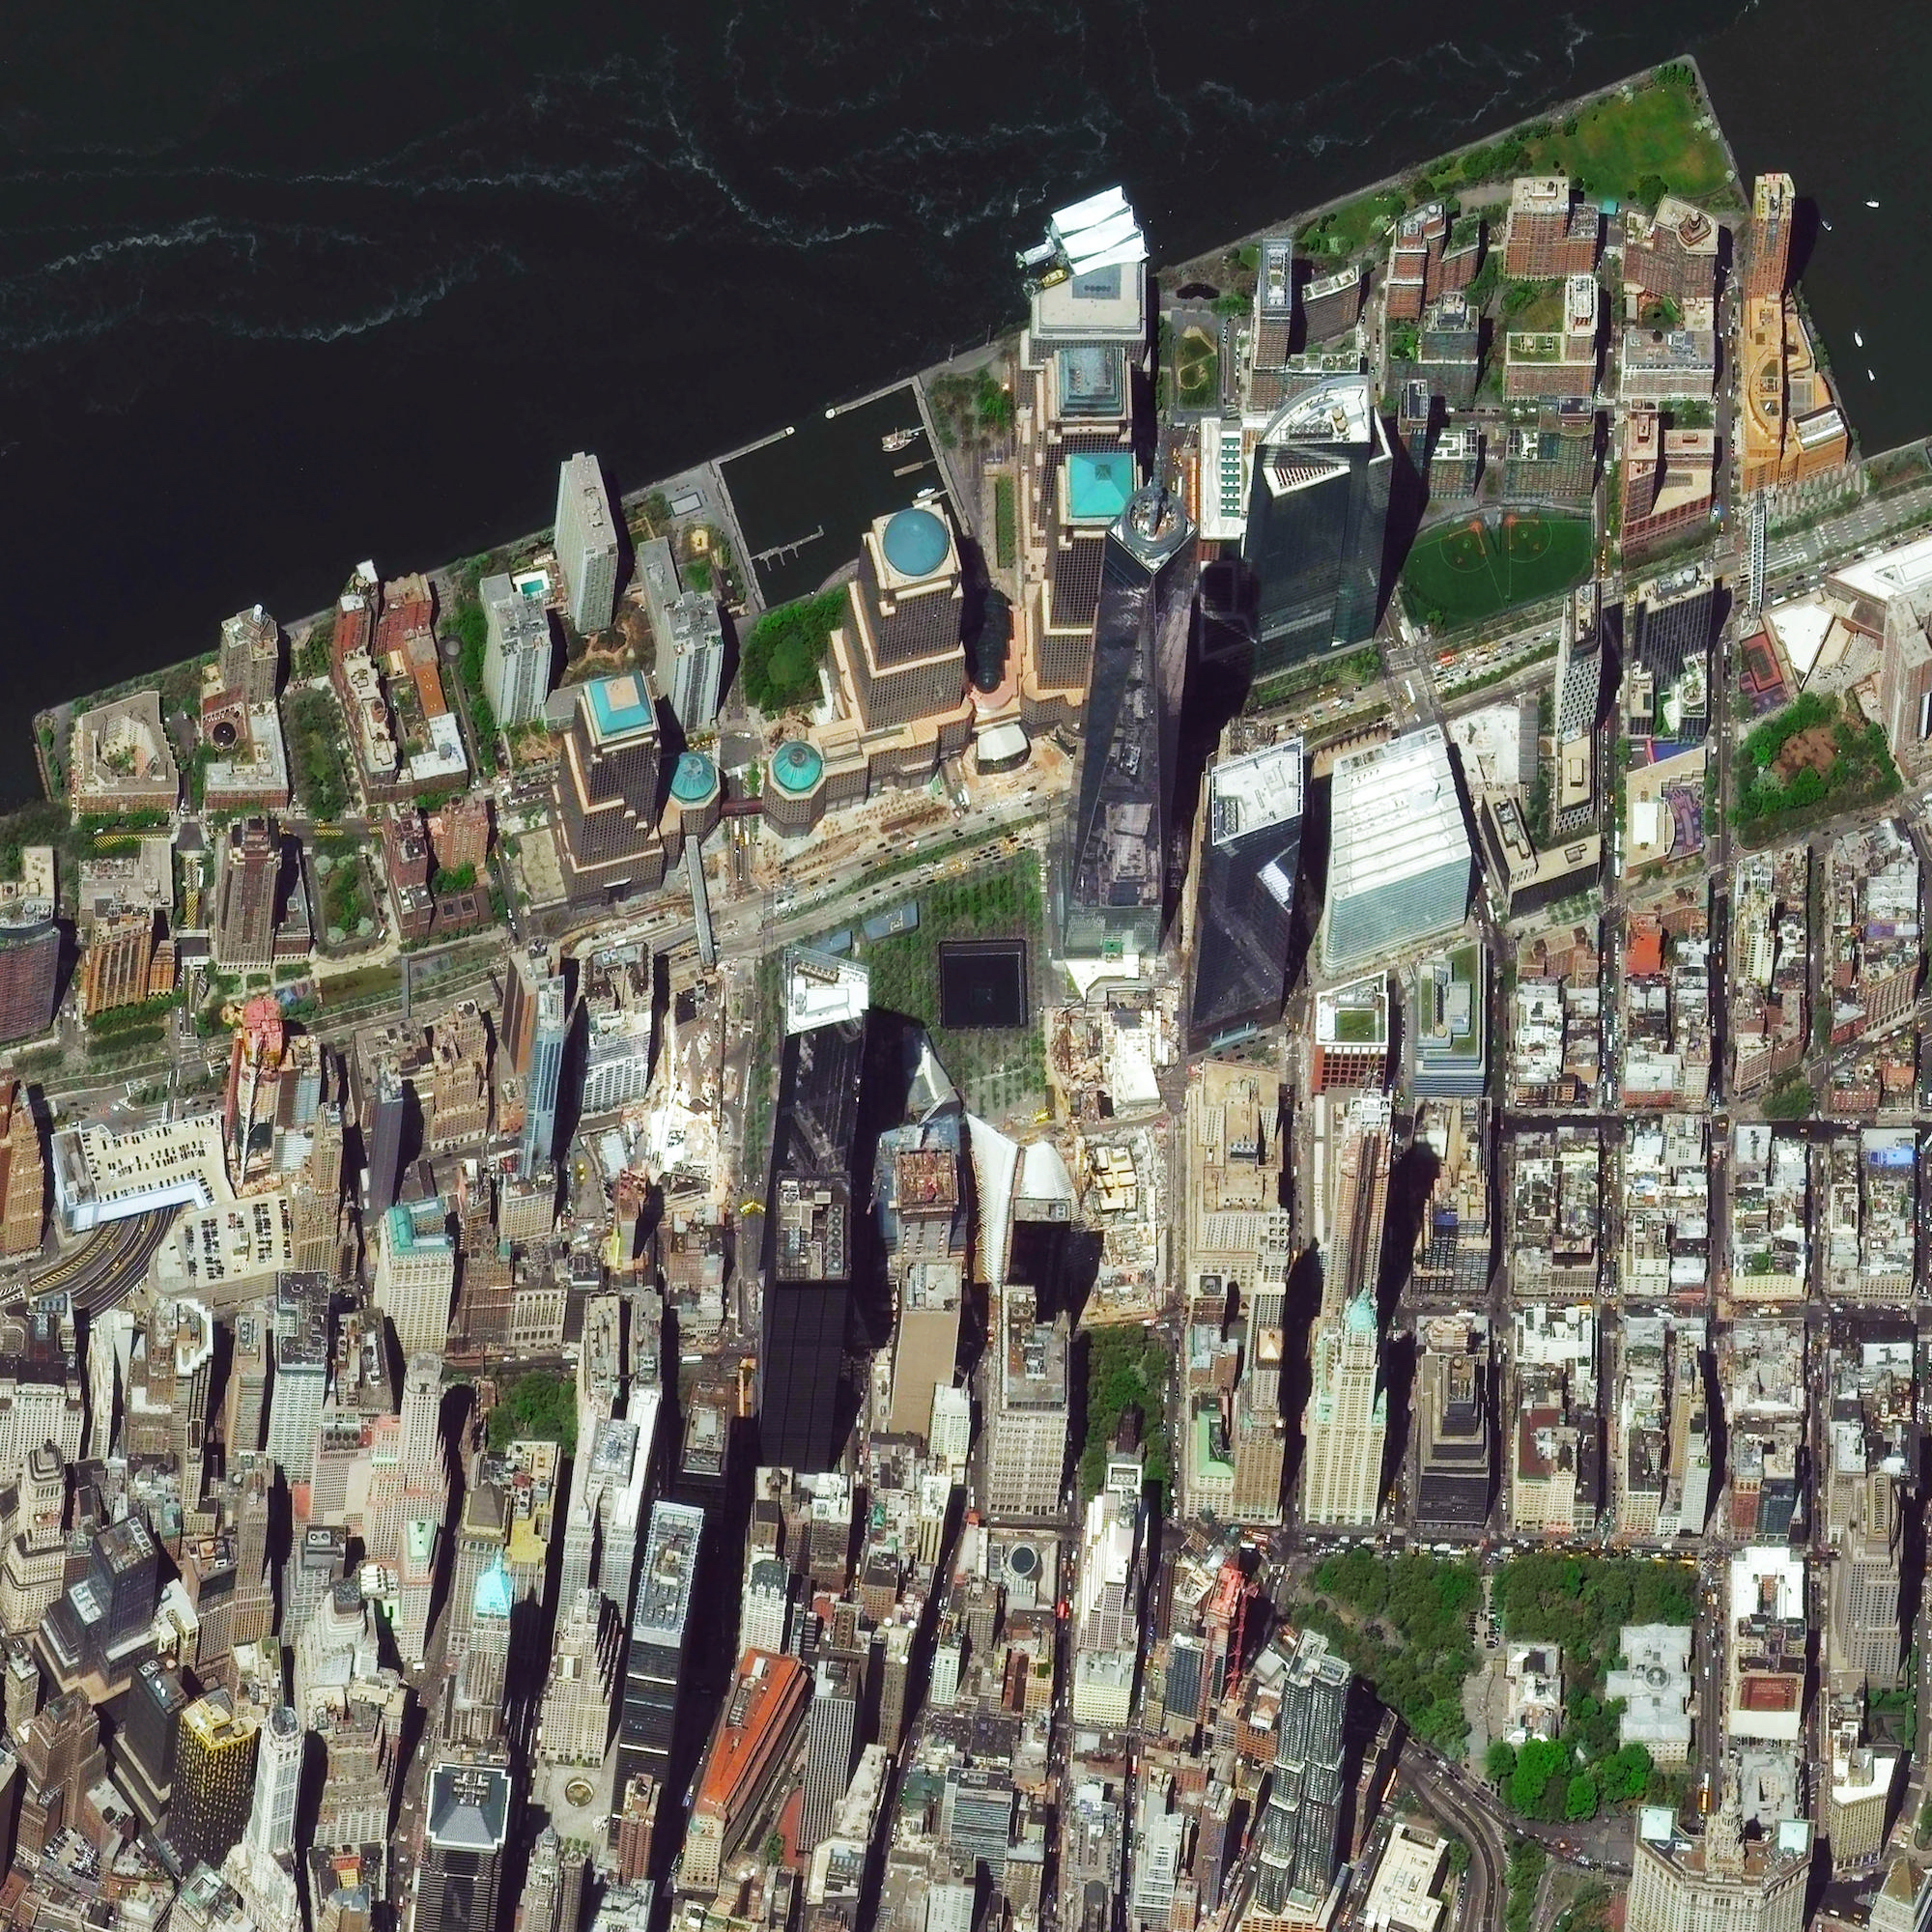 9/11/2015   One World Trade Center   New York, New York, USA  40.7129465, -74.0117528    Today marks the 14th anniversary of the September 11th attacks in the United States. At the center of this Overview, we can see One World Trade Center and the North Pool of the 9/11 Memorial in downtown Manhattan, New York City.